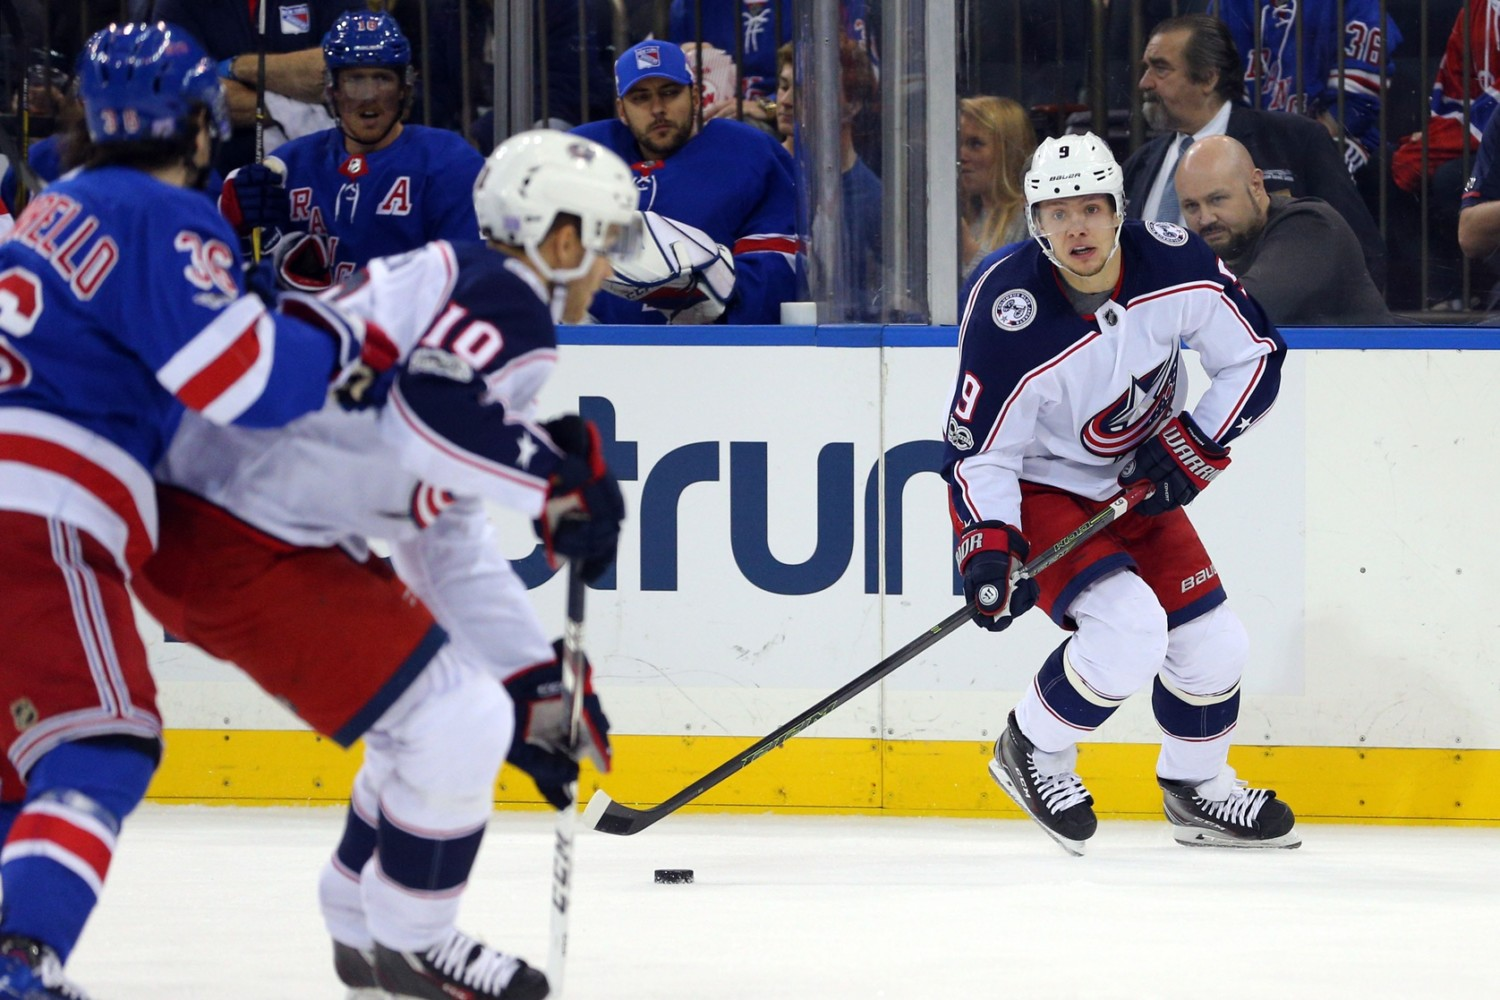 Artemi Panarin signs a seven year deal with the New York Rangers on Monday afternoon, we break down the details and more right here.